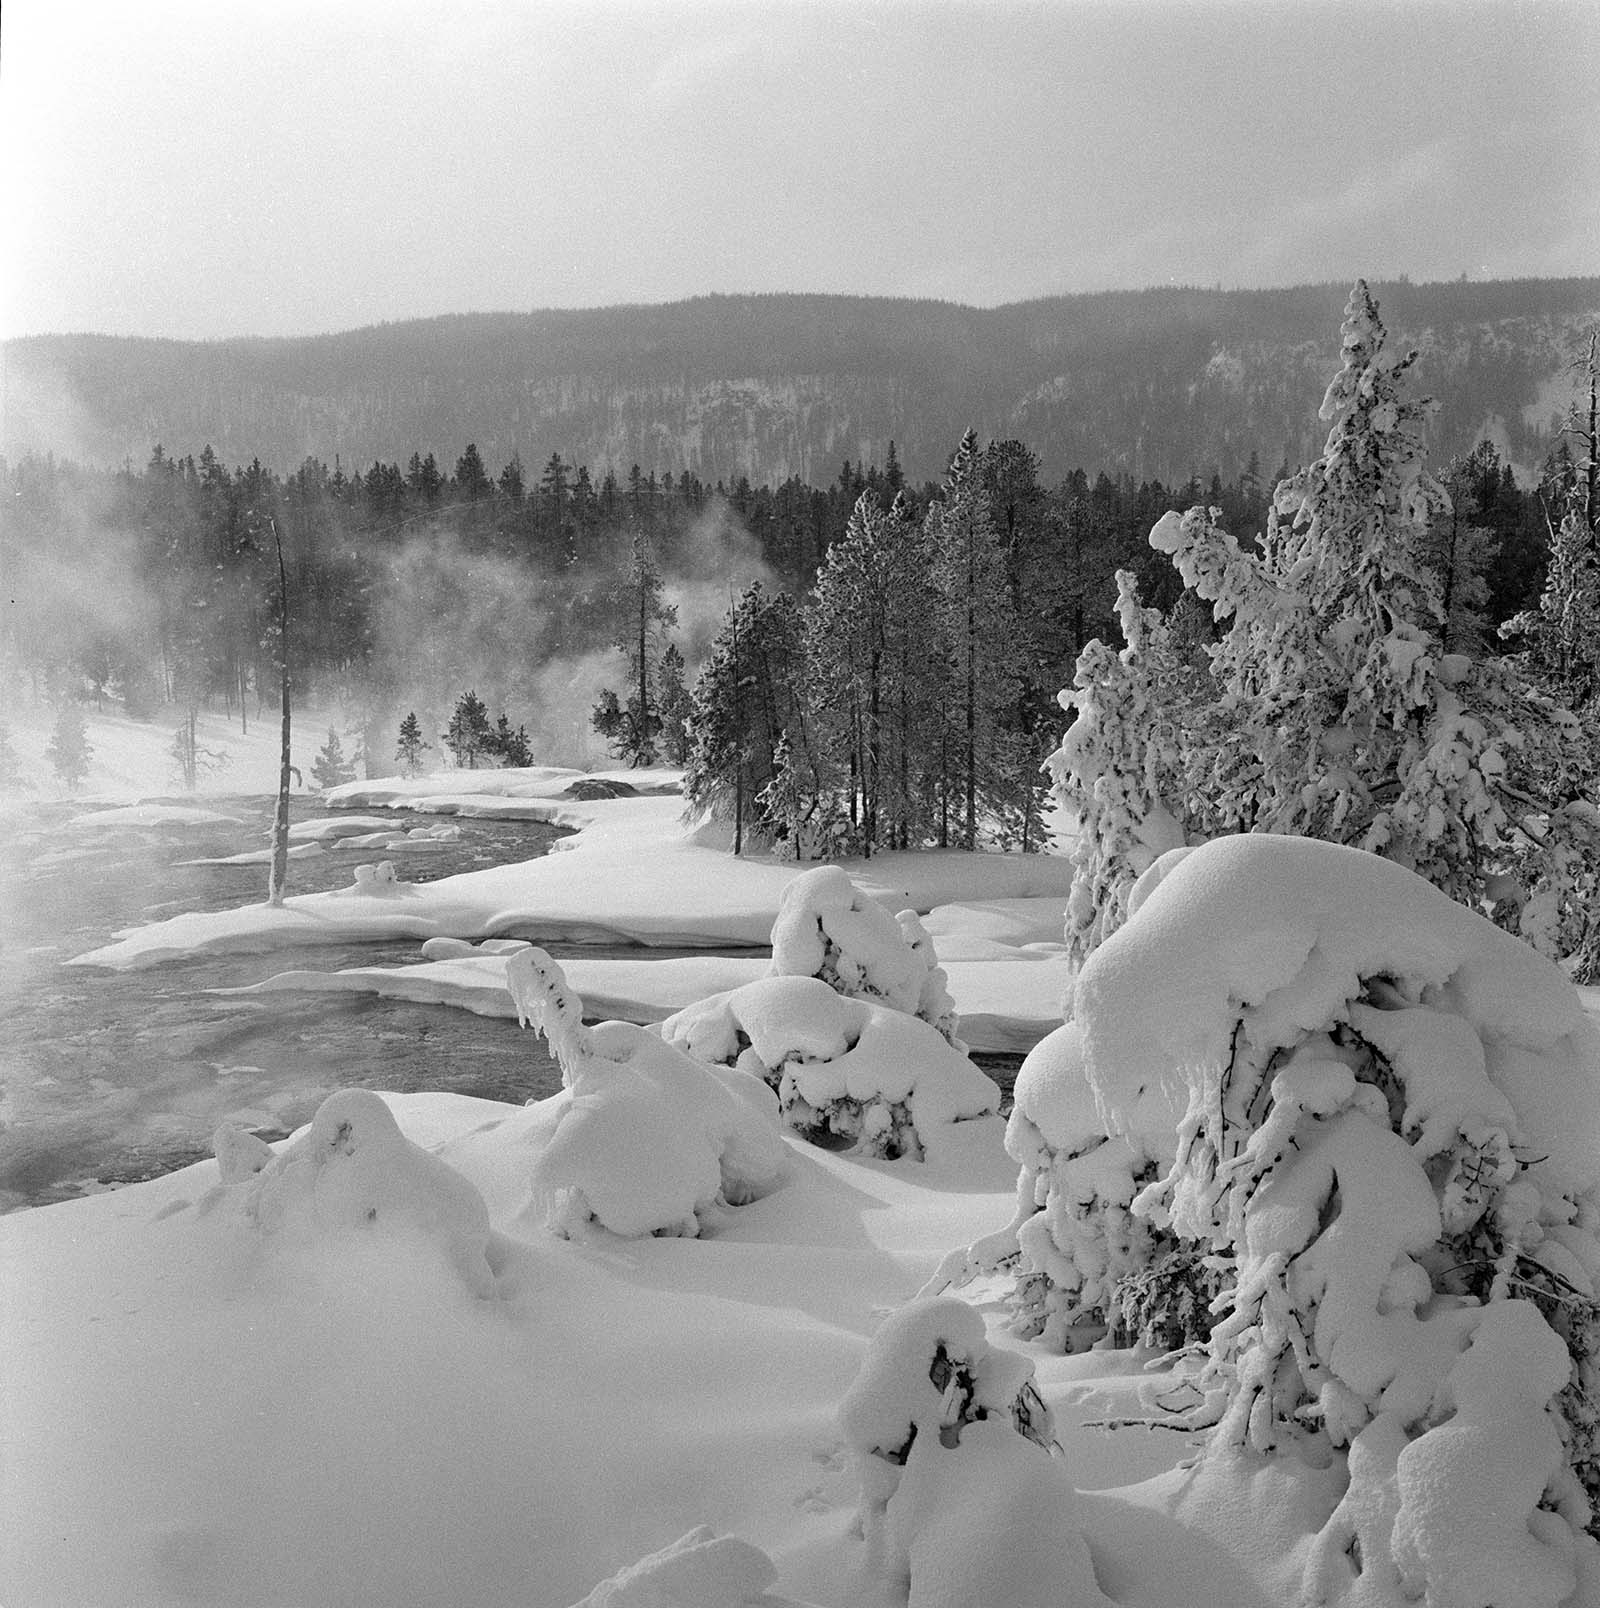 Jack Richard (1909-1992). Photograph negative. Snow on trees near hot springs in Old Faithful area of Yellowstone National Park, January 8, 1971. Jack Richard Photograph Collection. 89.57.11019.24